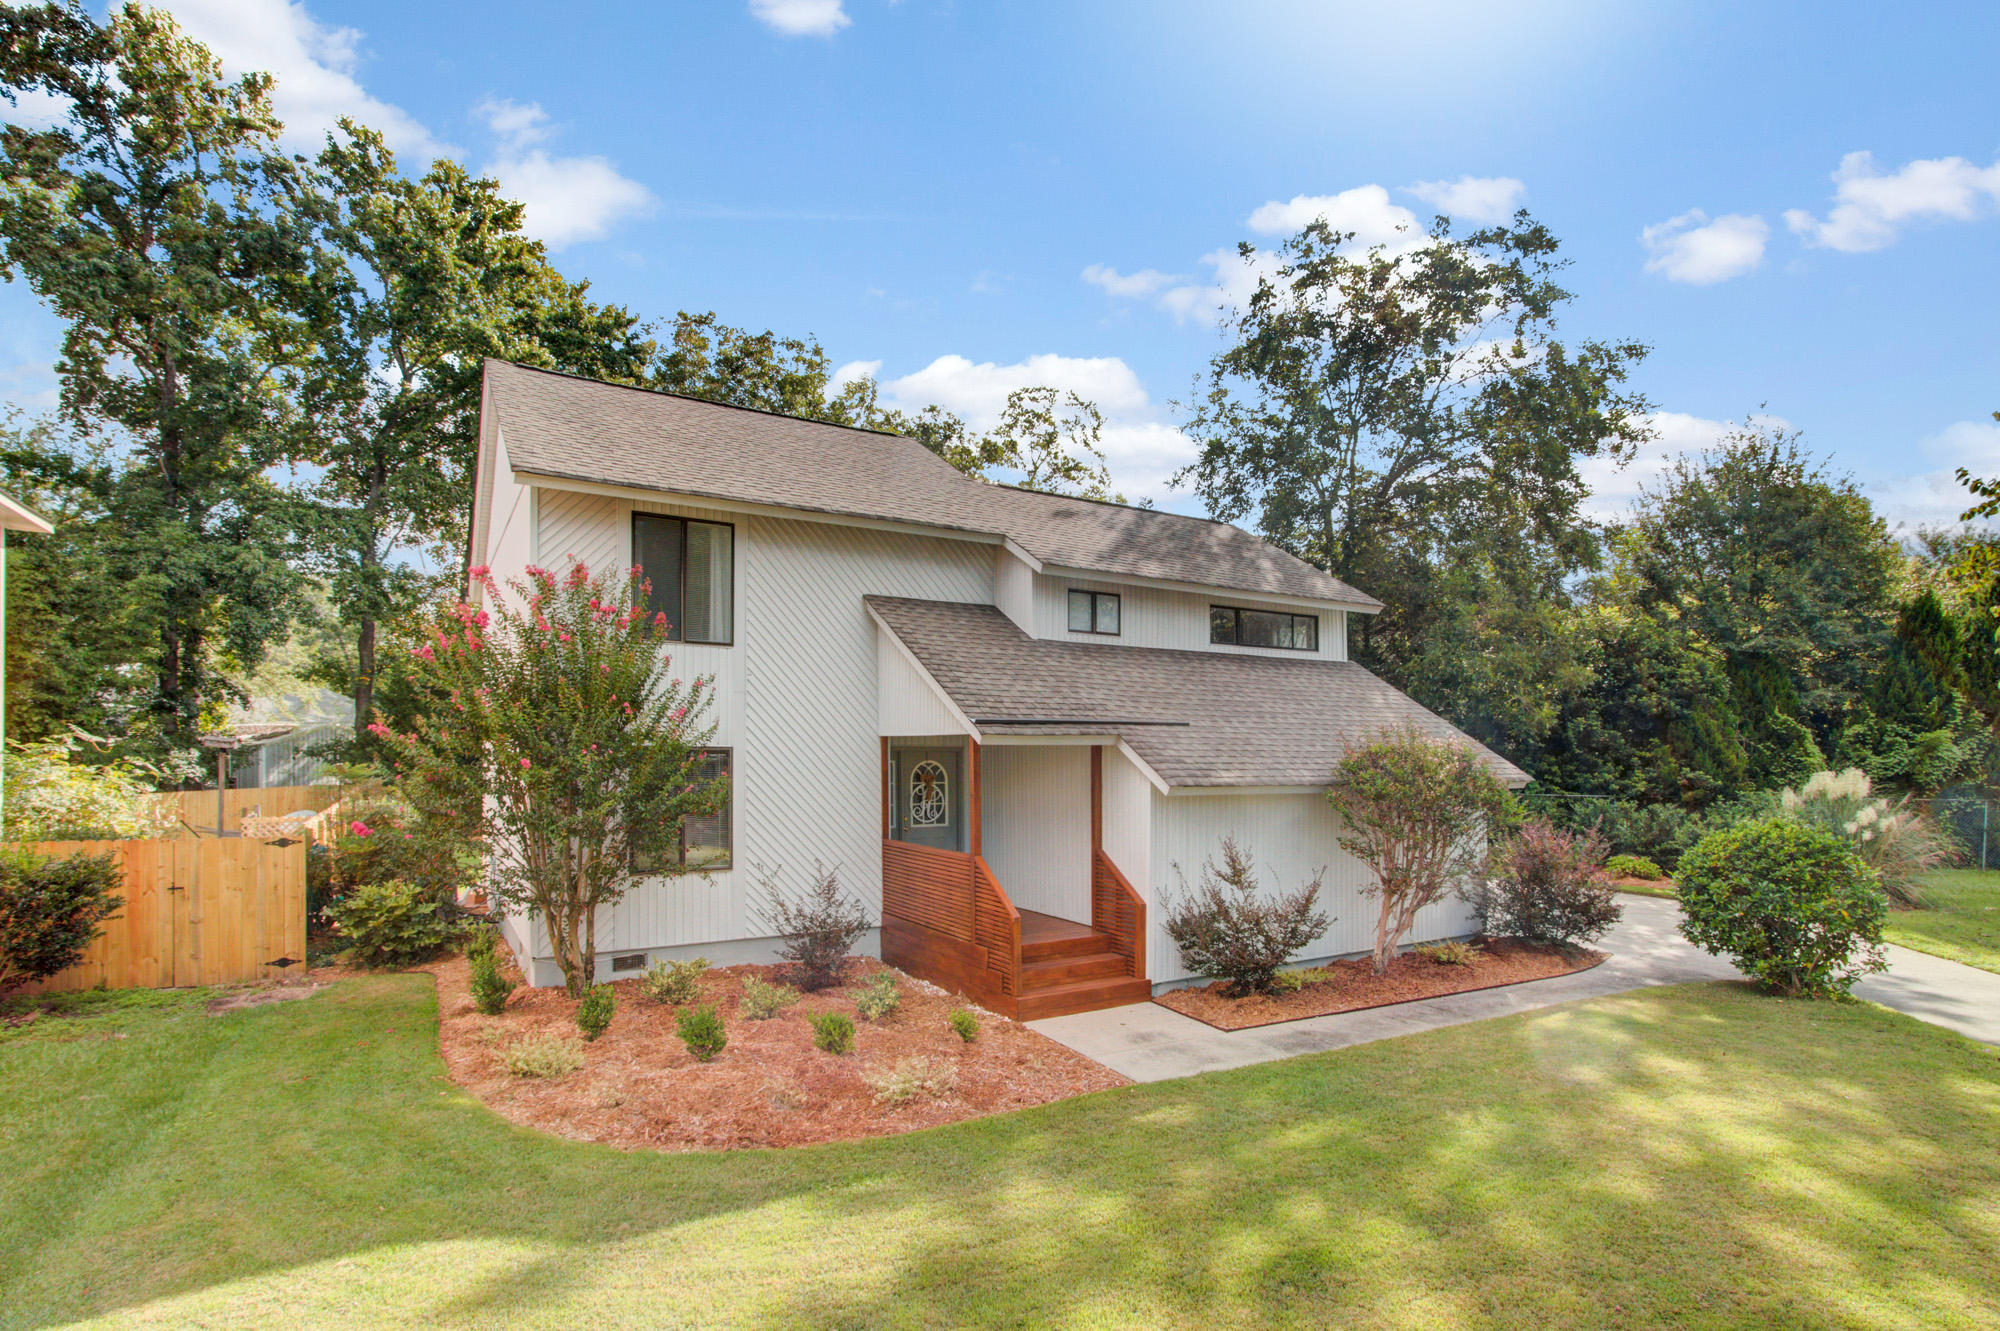 1260 Wespanee Place Court Charleston, Sc 29407